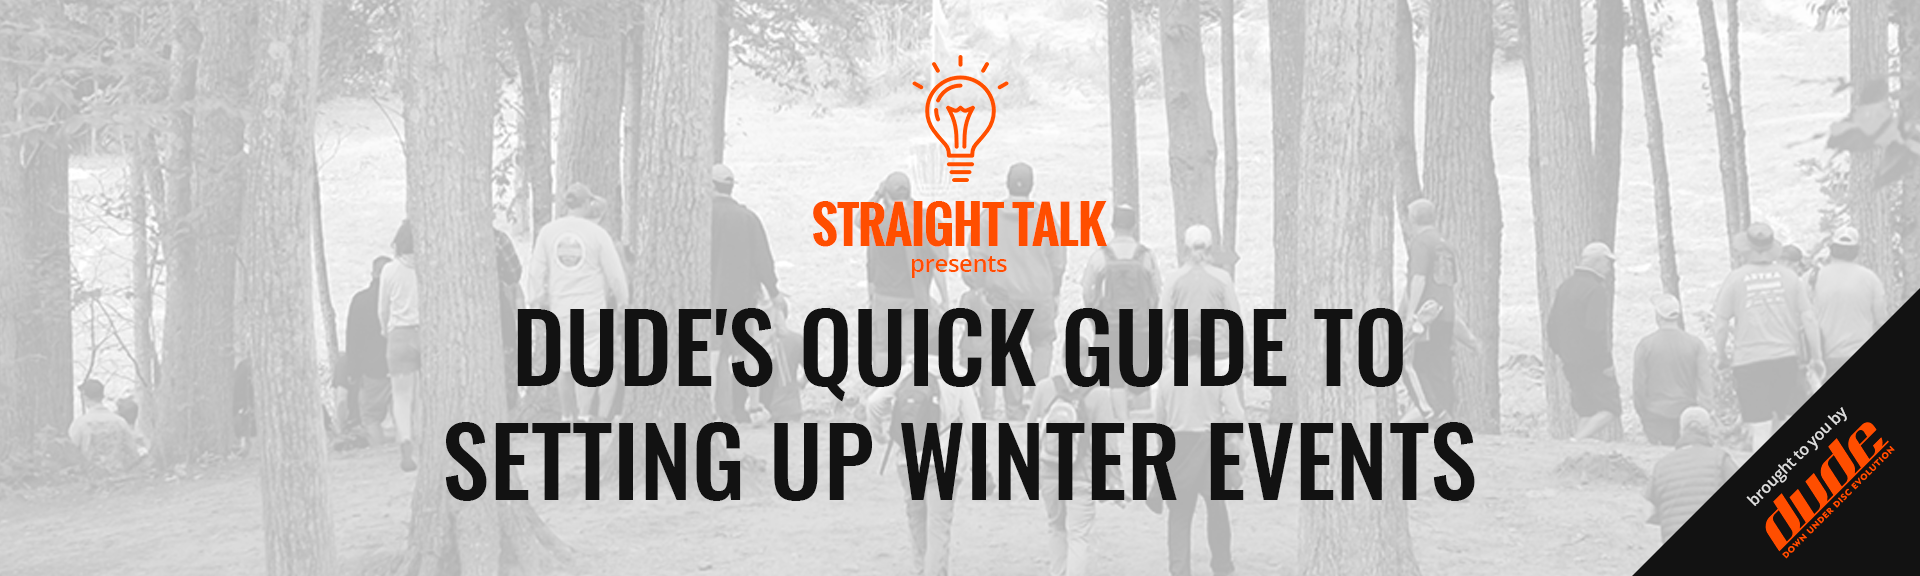 Dude Clothing Straight Talk Quick Guide To Setting up events